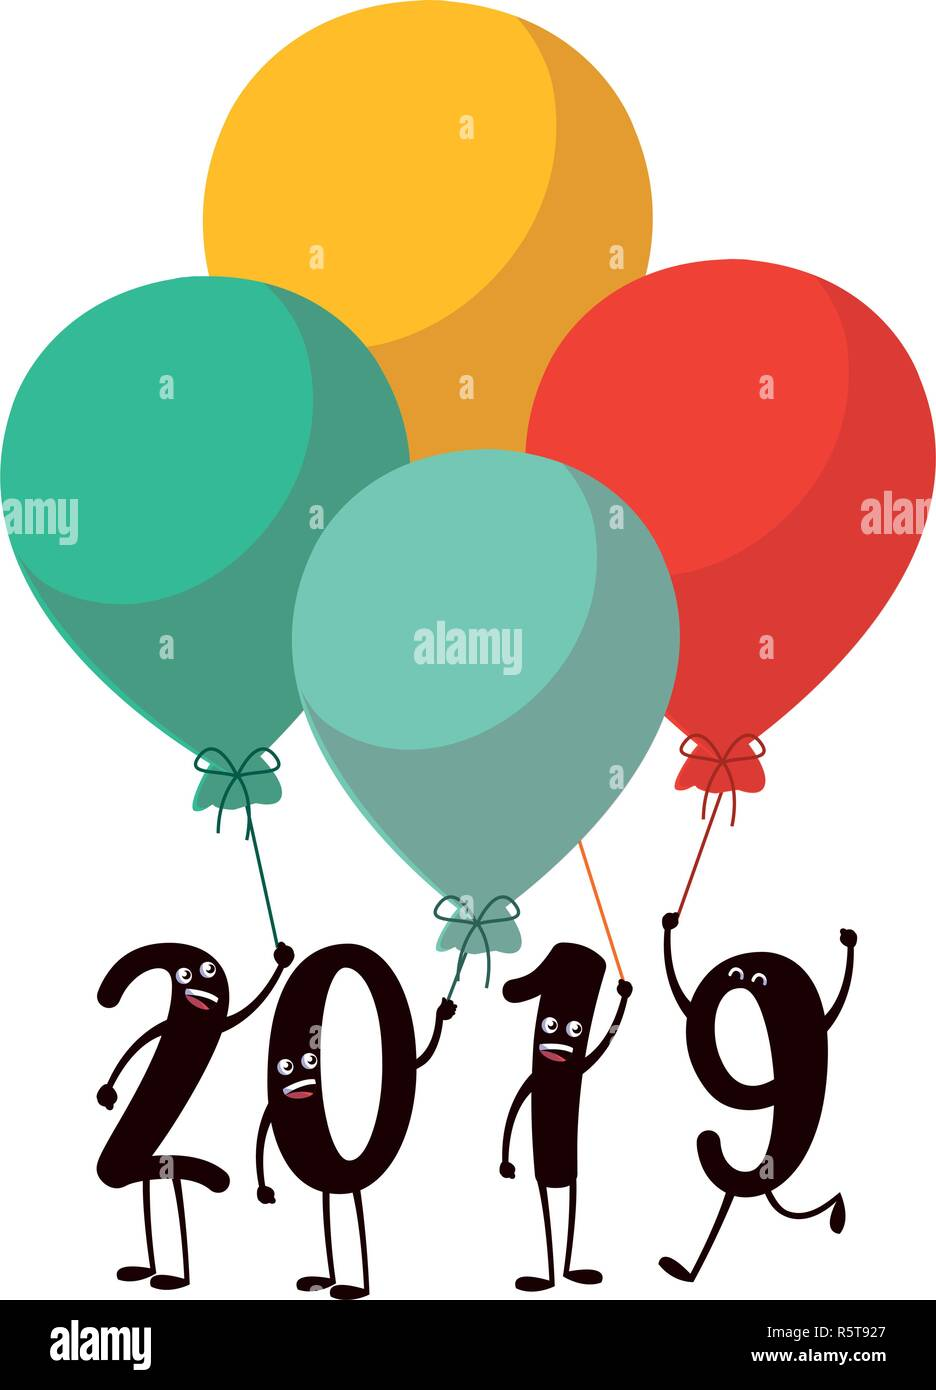 Cartoon 2019 Numbers Holding Balloons Over White Background Vector